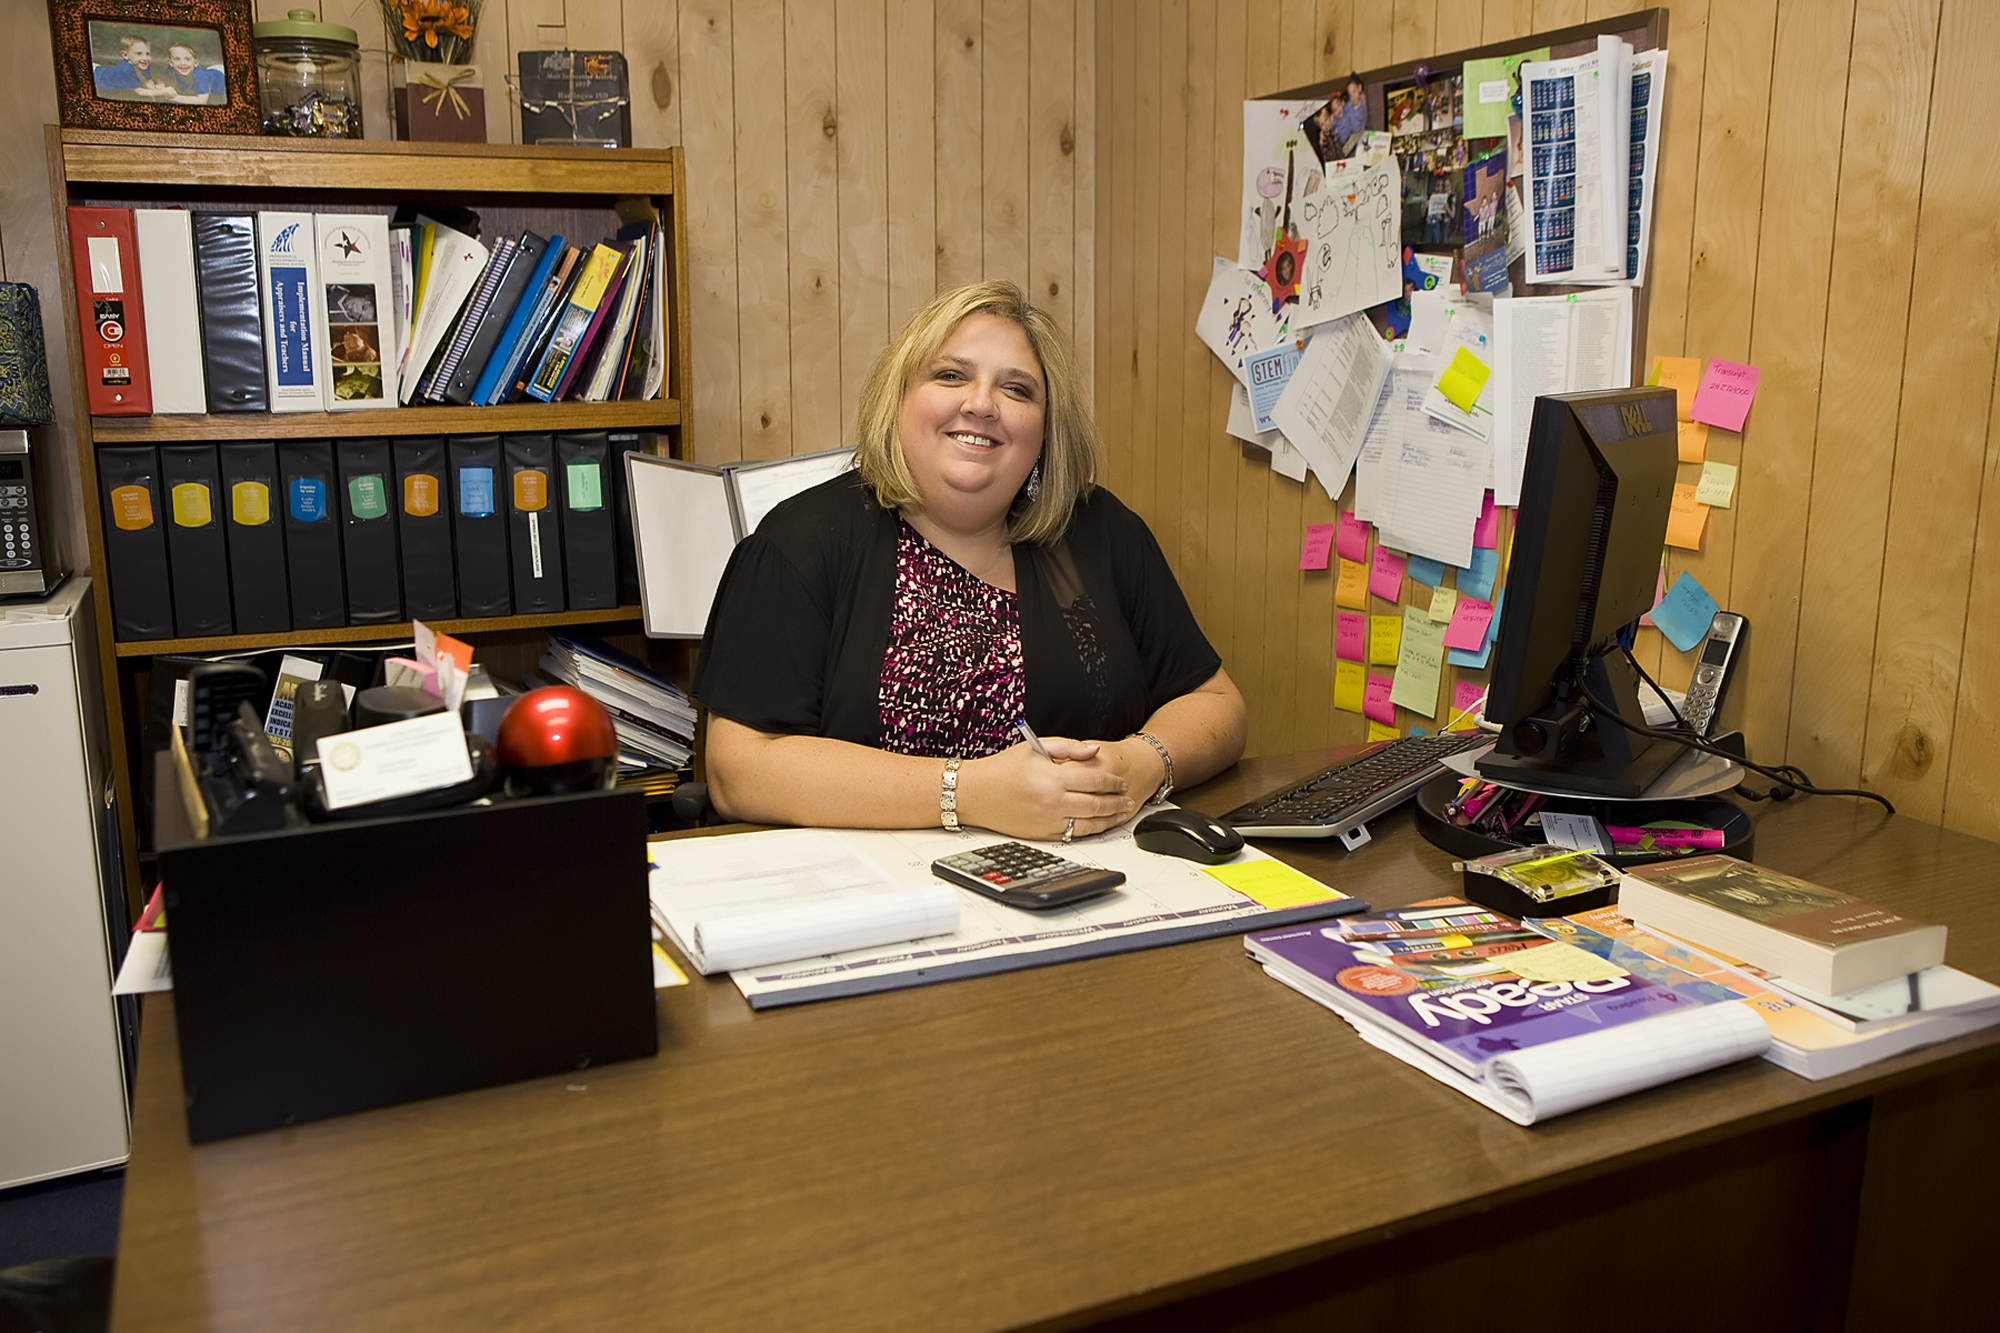 Person of the Week: Wreden brings ideas to HCISD